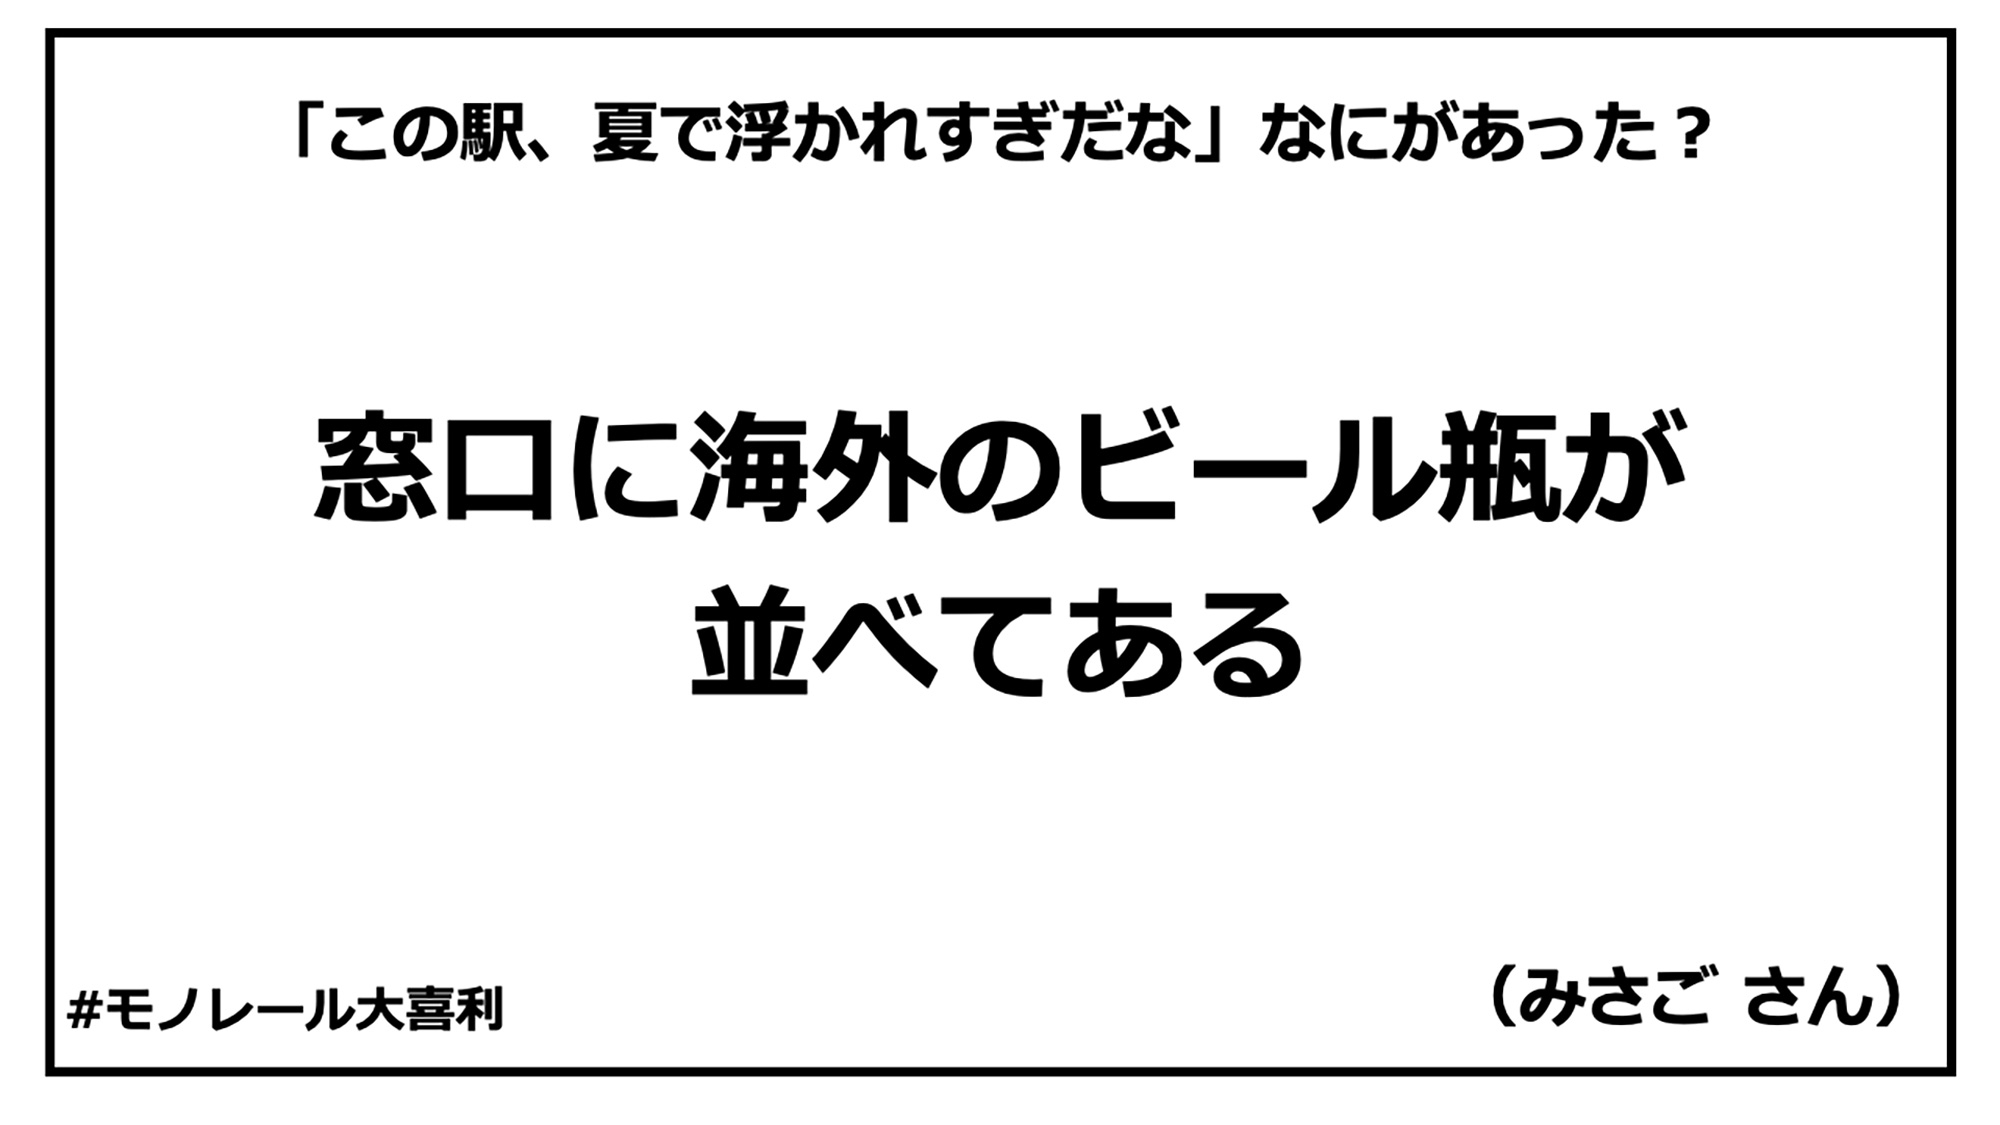 ogiri_answer_26_7.jpg